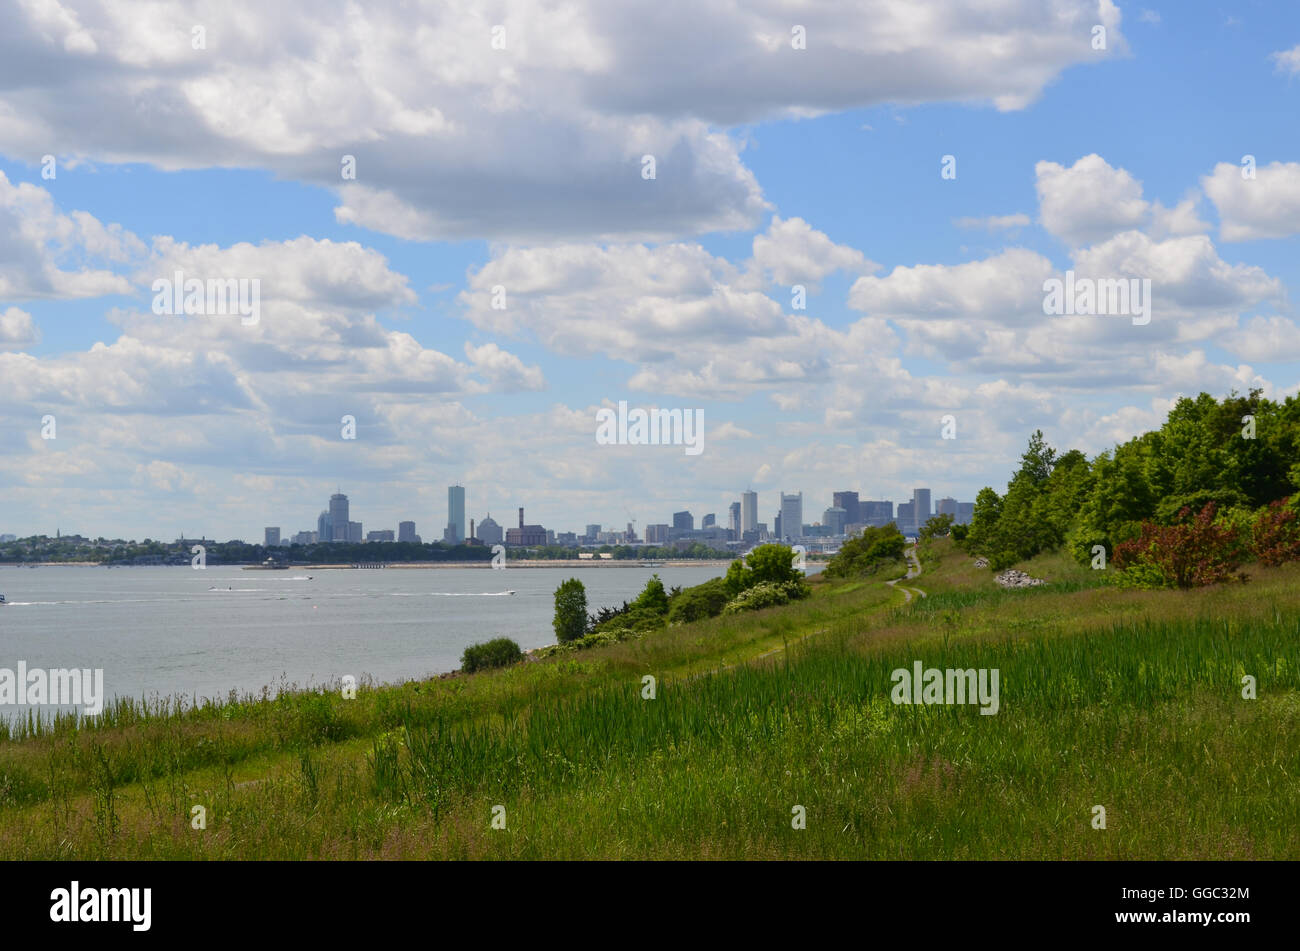 Cityscape of Boston with puffy white clouds over Boston from the harbor. - Stock Image